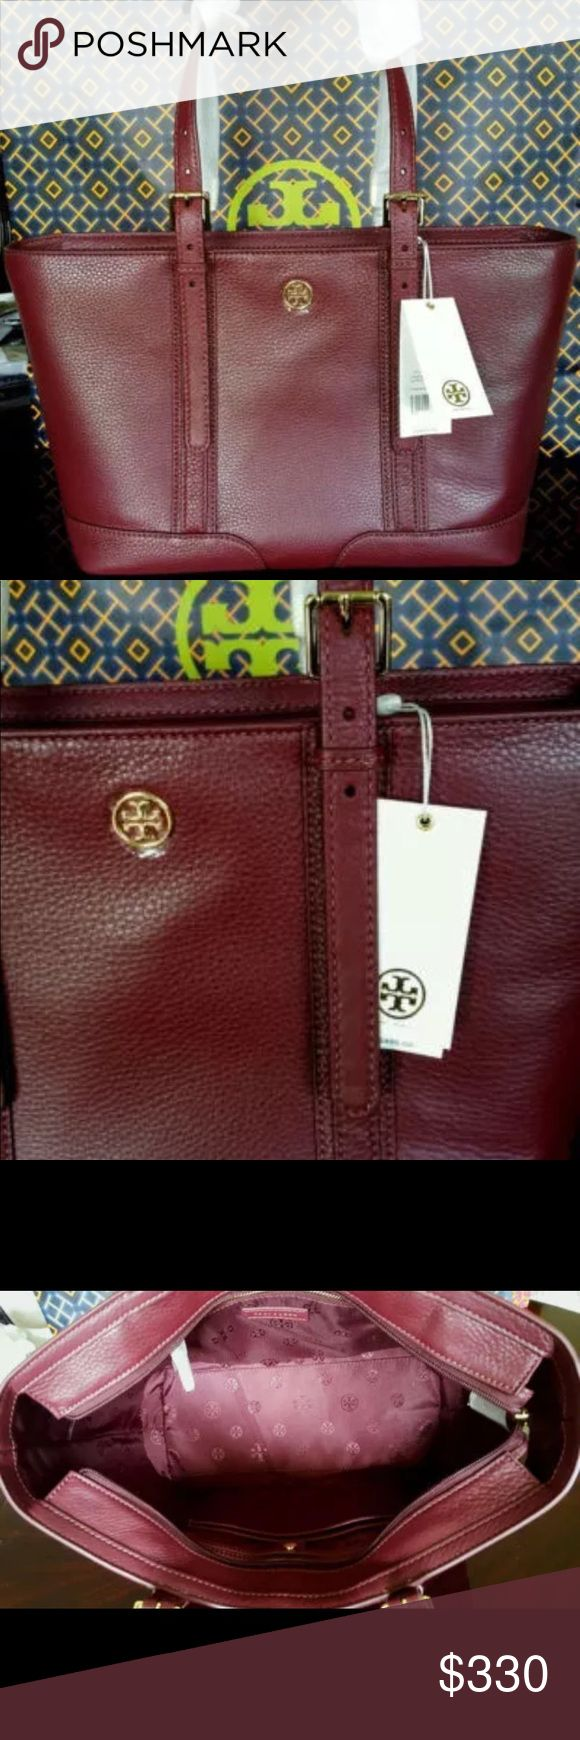 Tory Burch medium tote burgundy pebble leather NWT new pebble leather tote Tory Burch Tory Burch Bags Totes